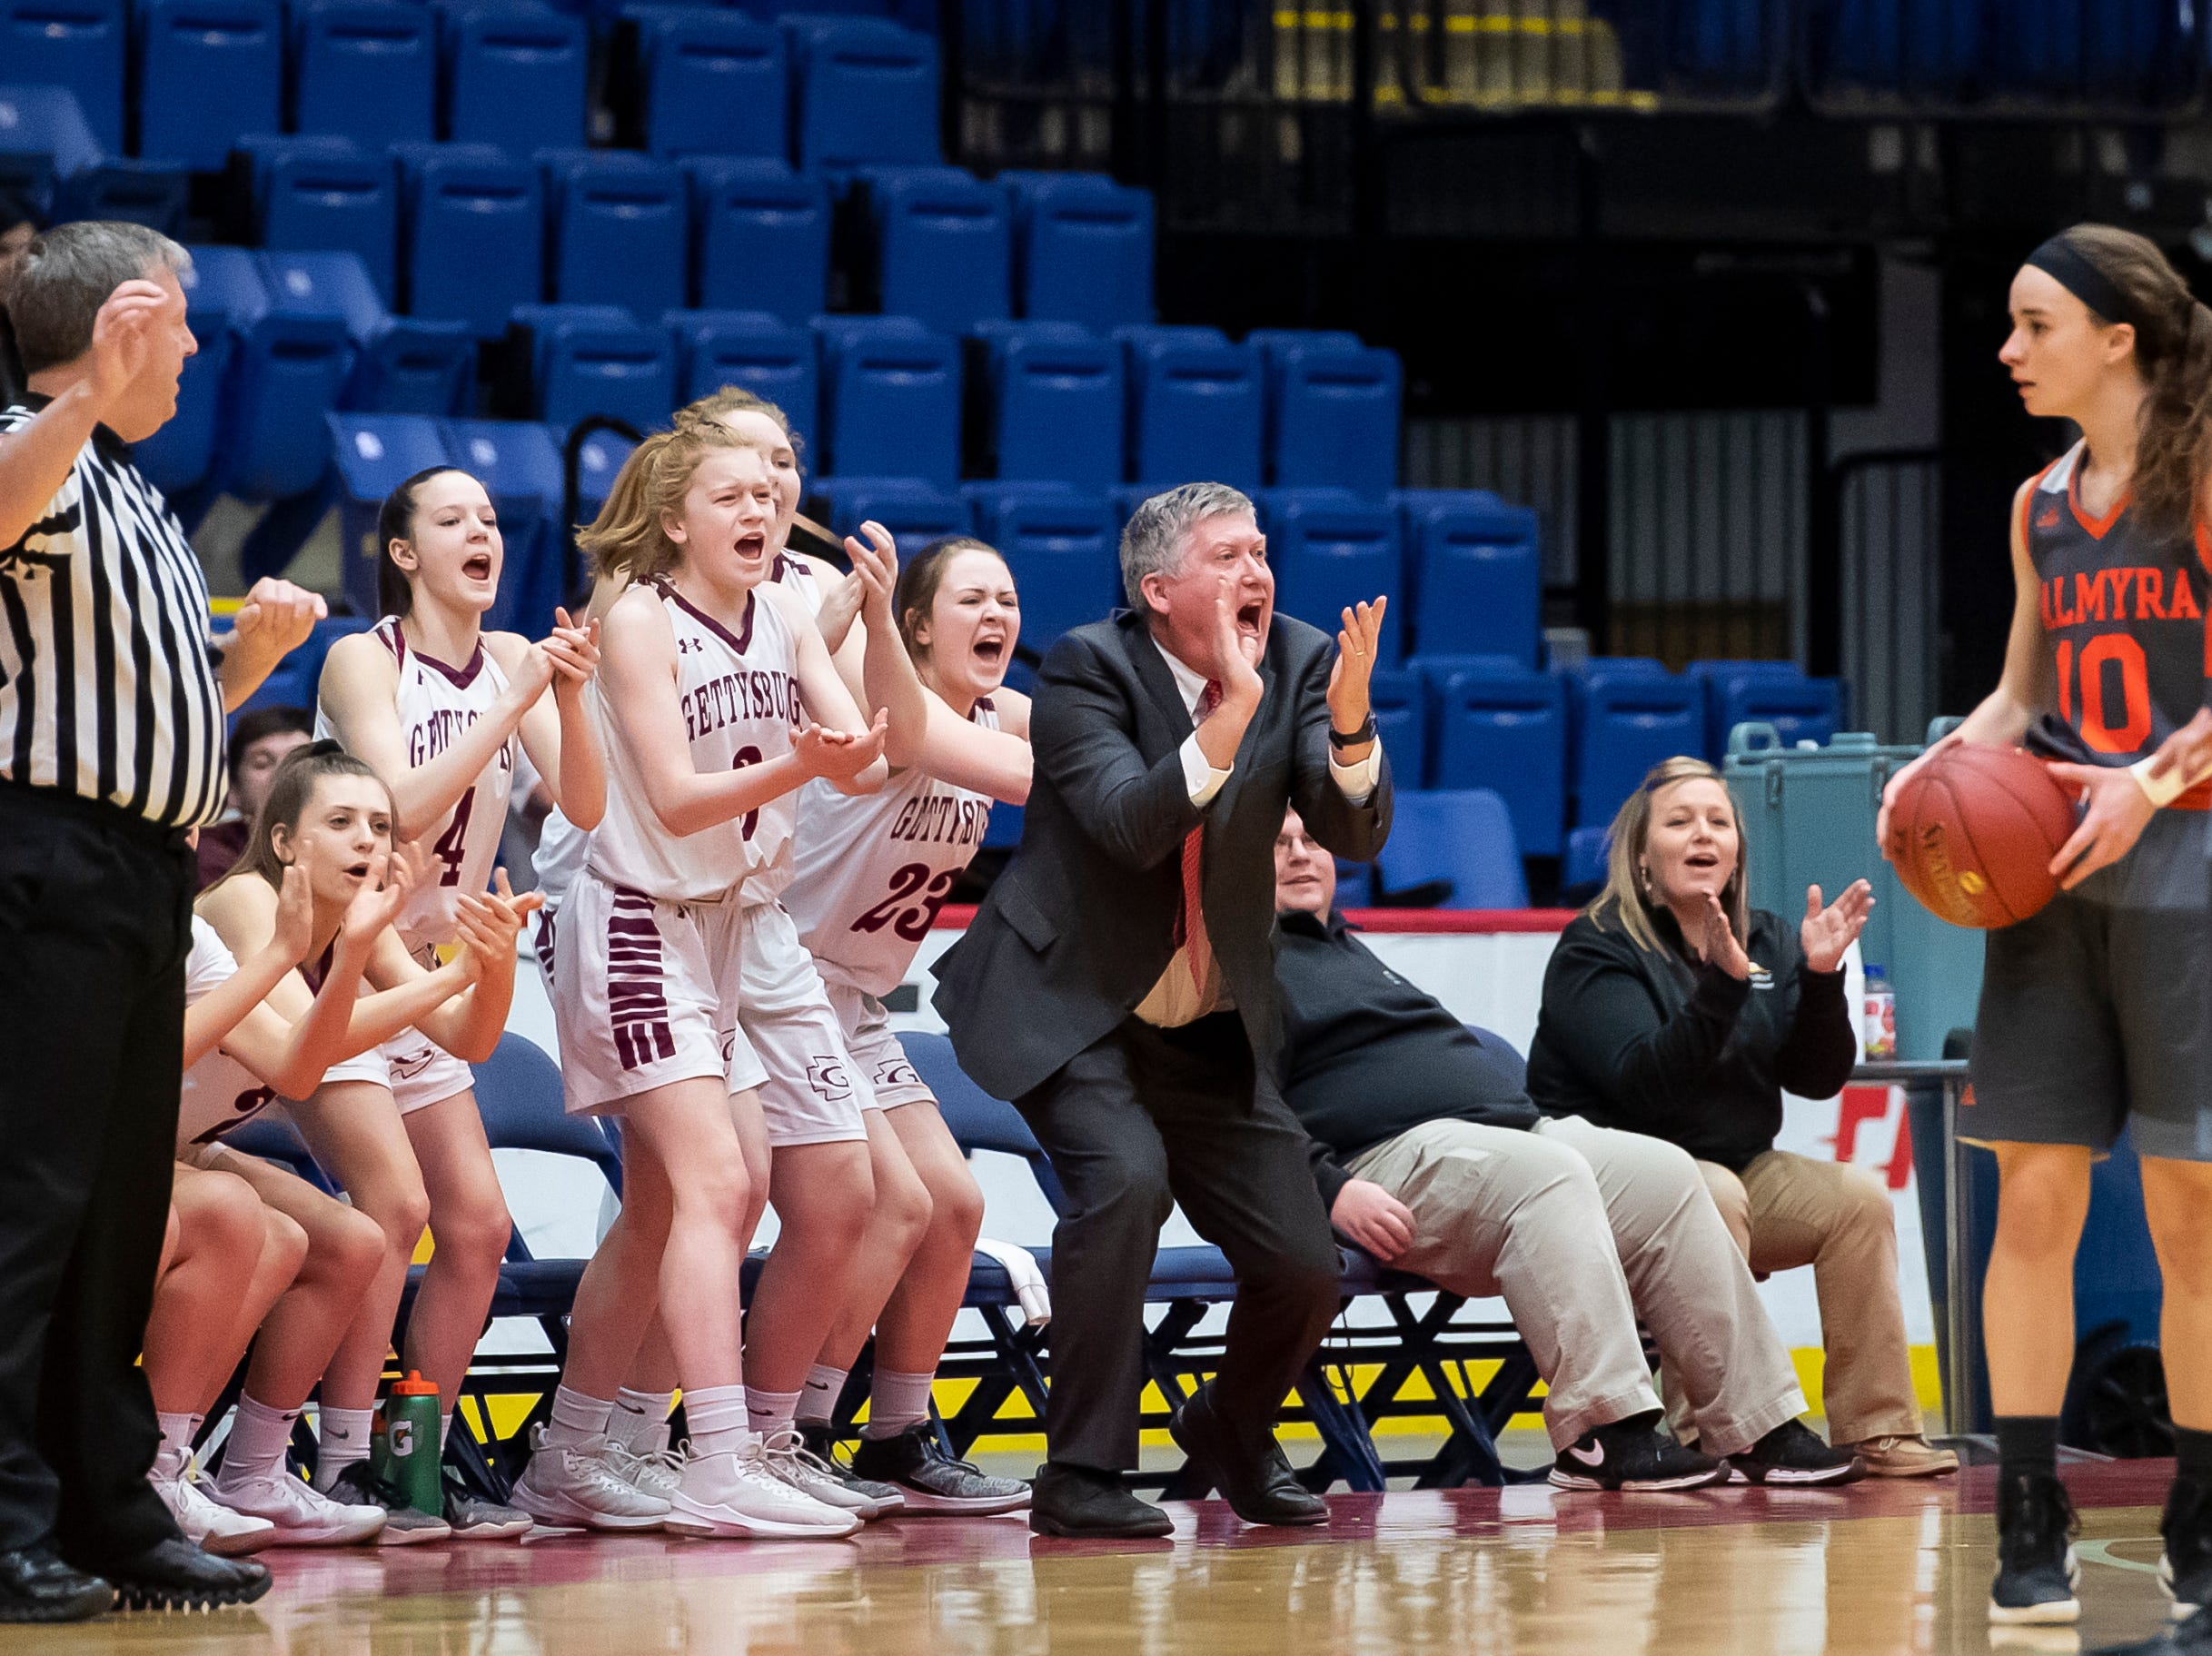 Gettysburg head coach Jeff Bair and the Warriors bench react after forcing a turnover during the District 3 5A girls championship game against Palmyra at Santander Arena in Reading, Pa., Friday, March 1, 2019.